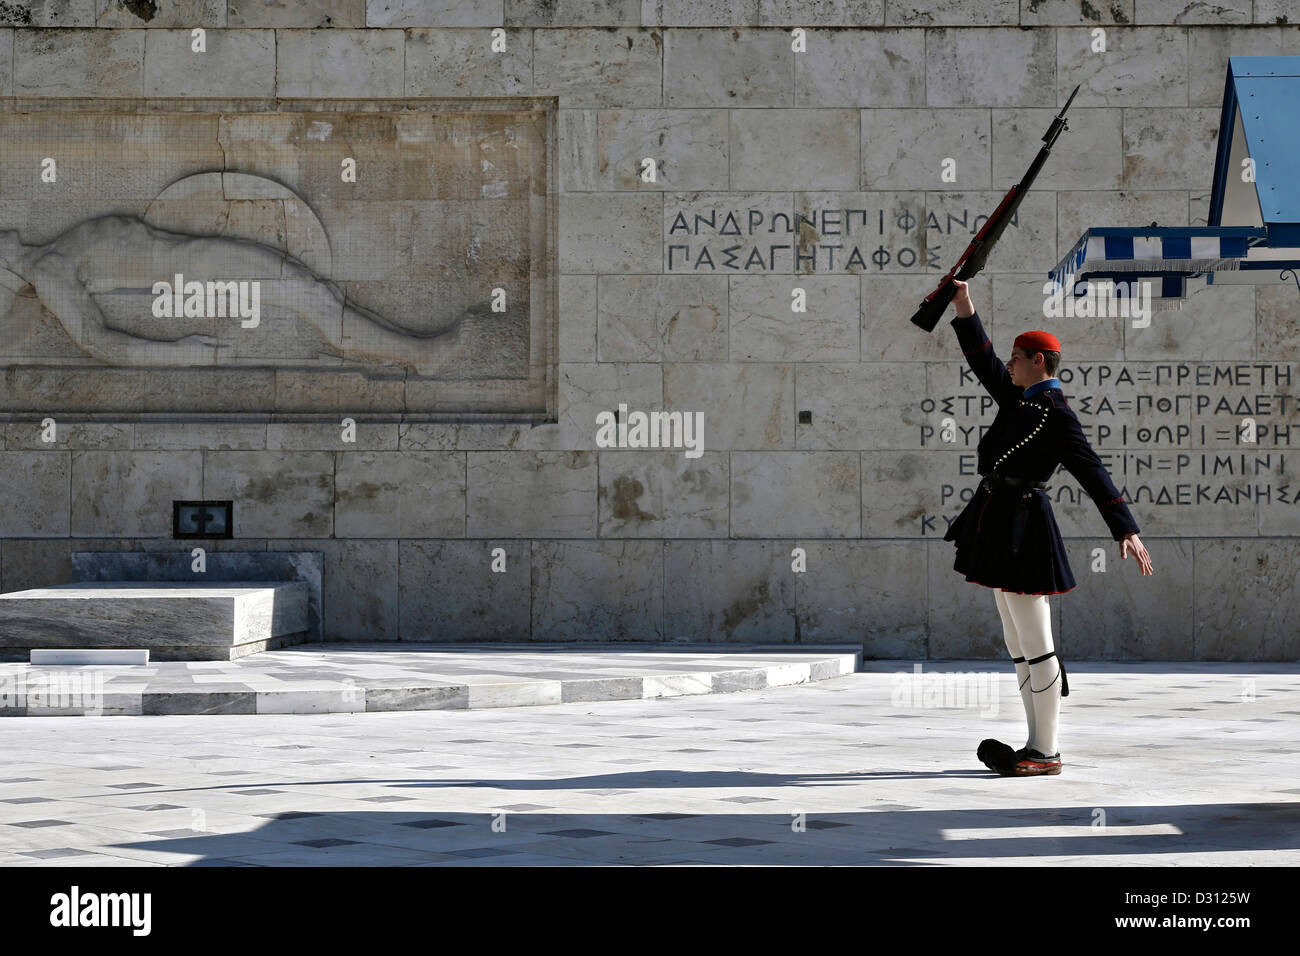 Presidential Guard (Evzone) performing in front of the Tomb of the Unknown Soldier, Athens, Greece. - Stock Image